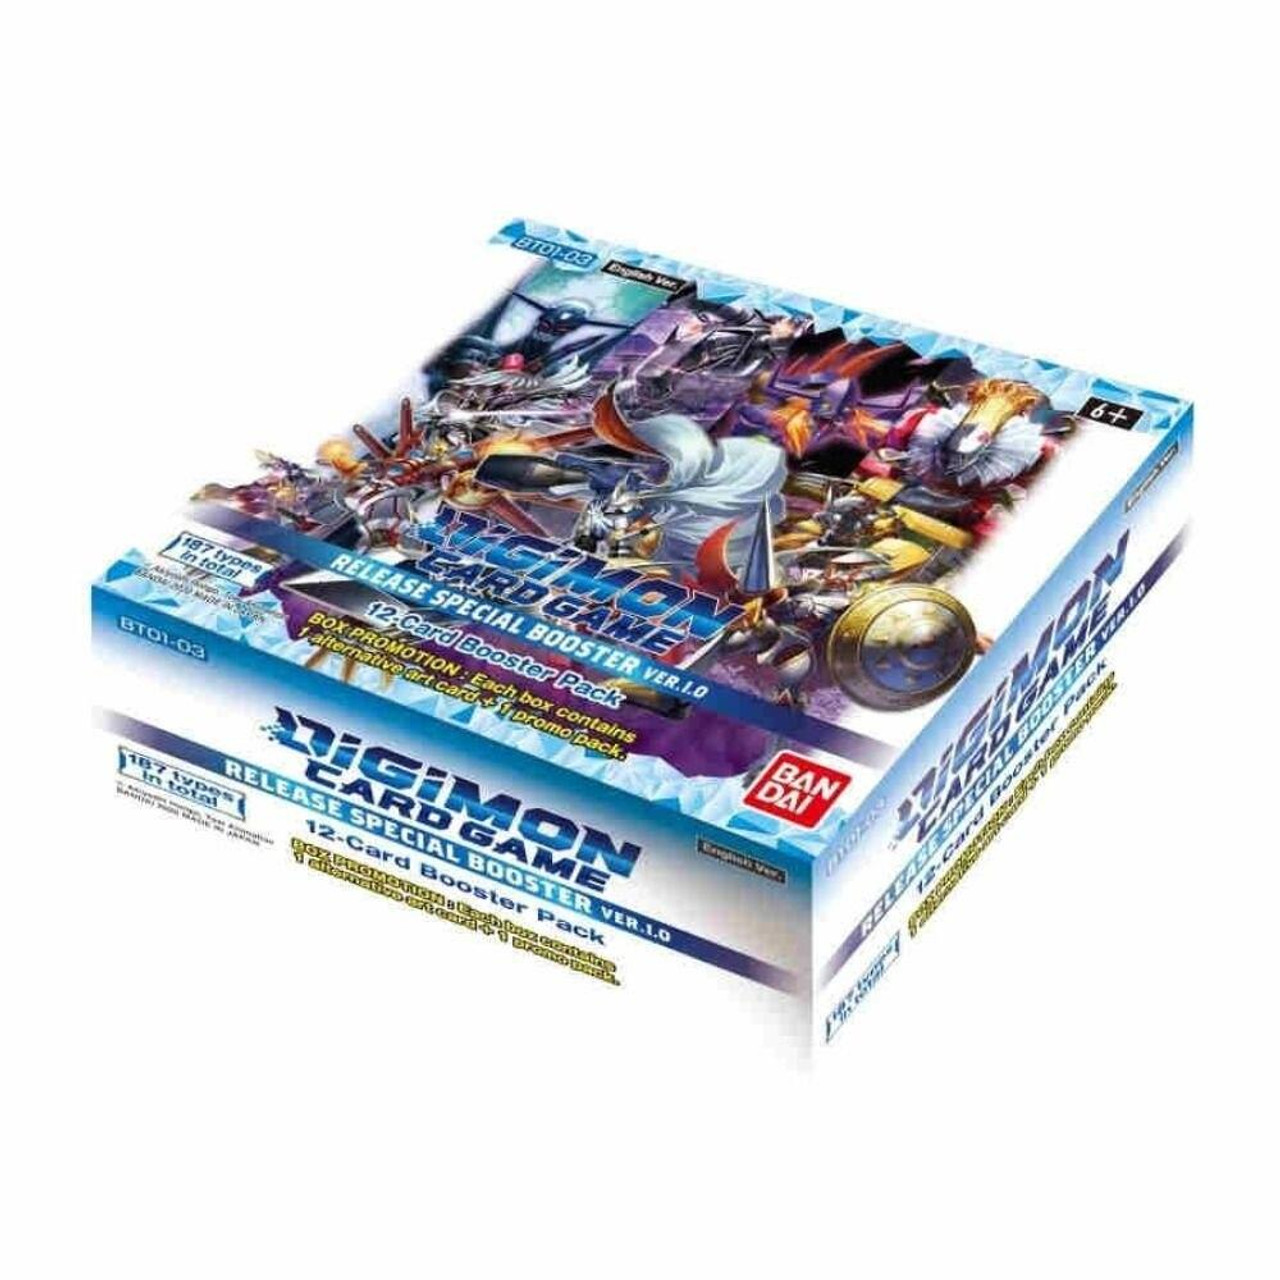 Bandai Digimon Card Game Box - BT01-03 Release Special Booster 1.0